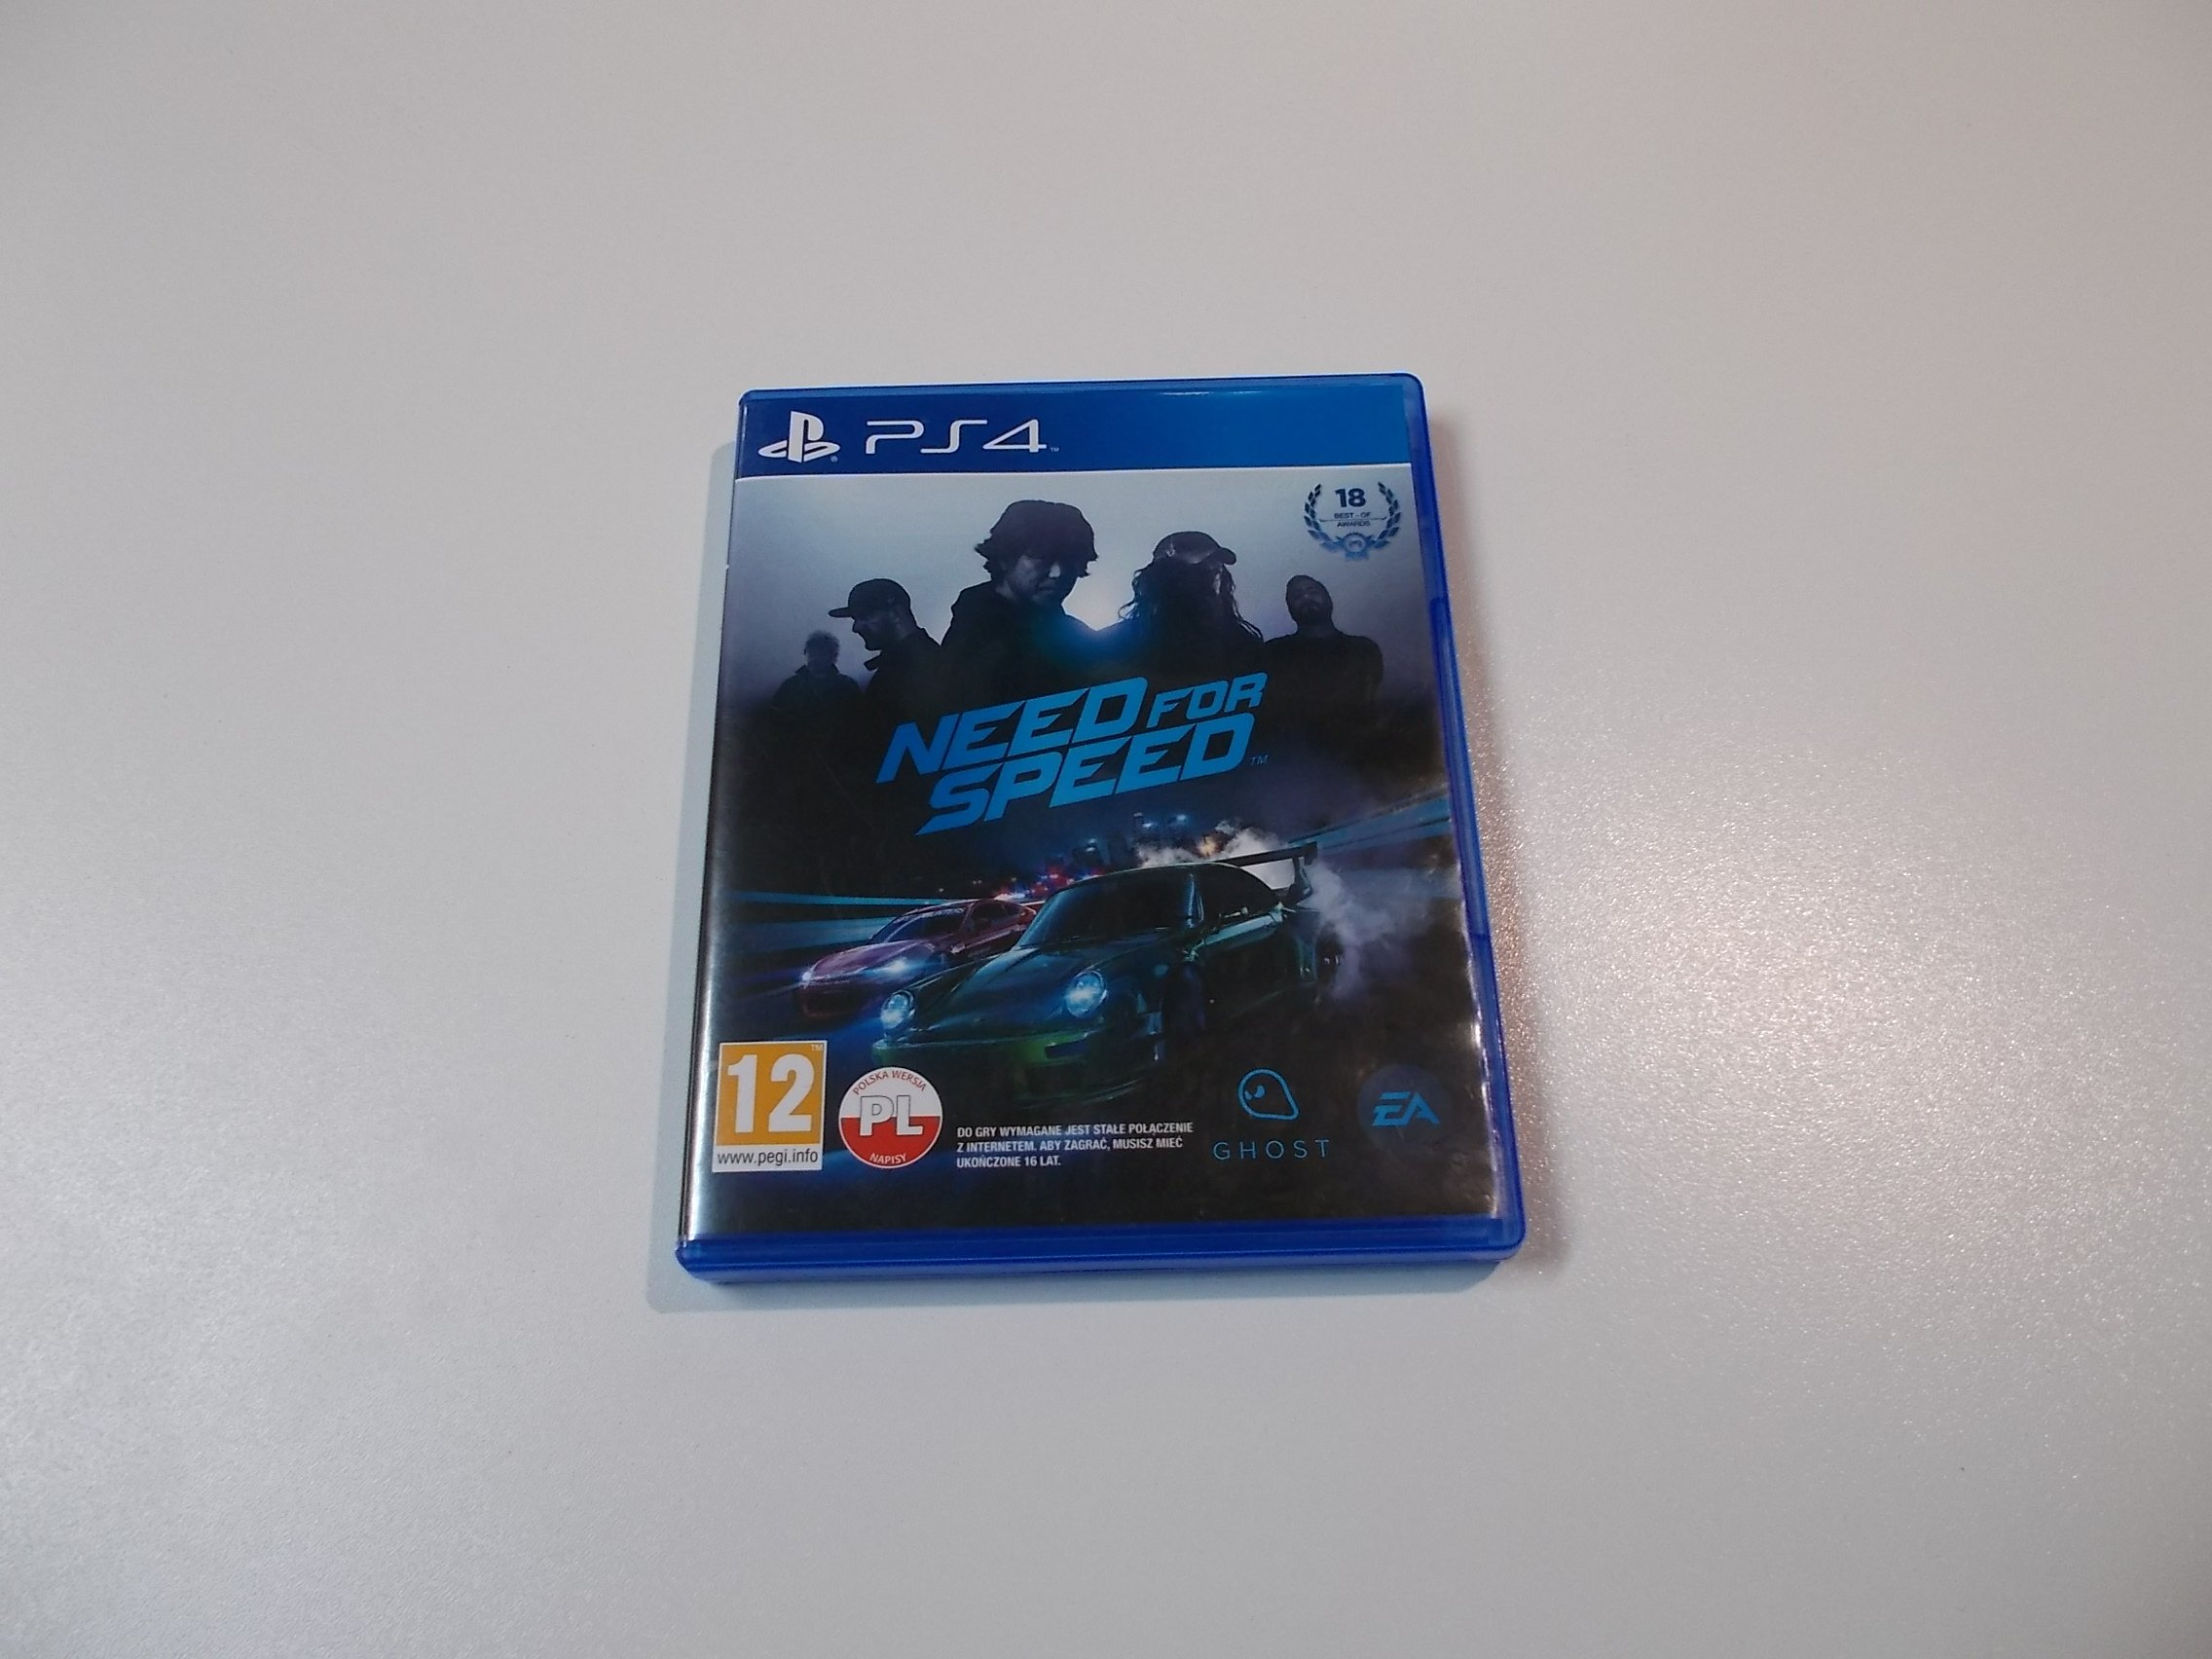 Need for speed PL - GRA Ps4 - Sklep ALFA Opole 0378